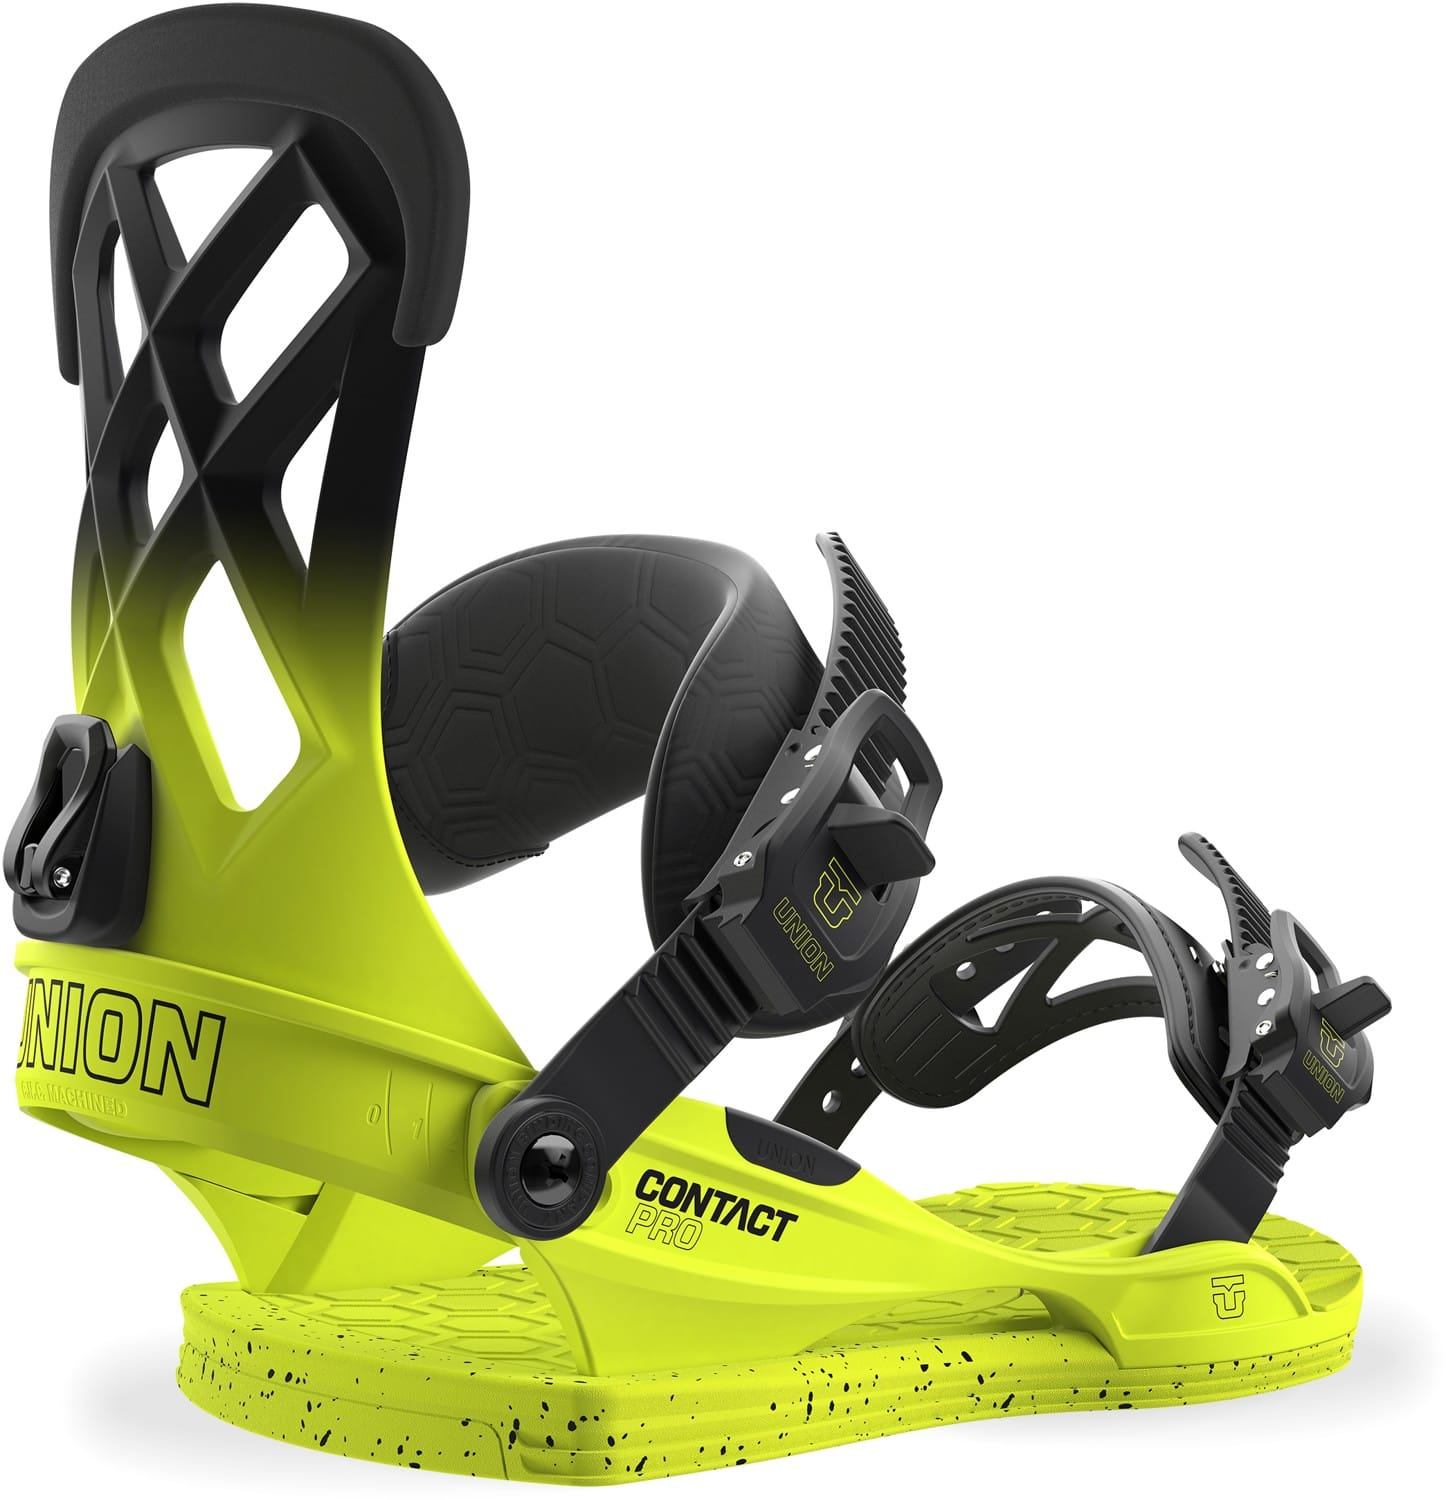 Union Contact Pro Snowboard Bindings 2018